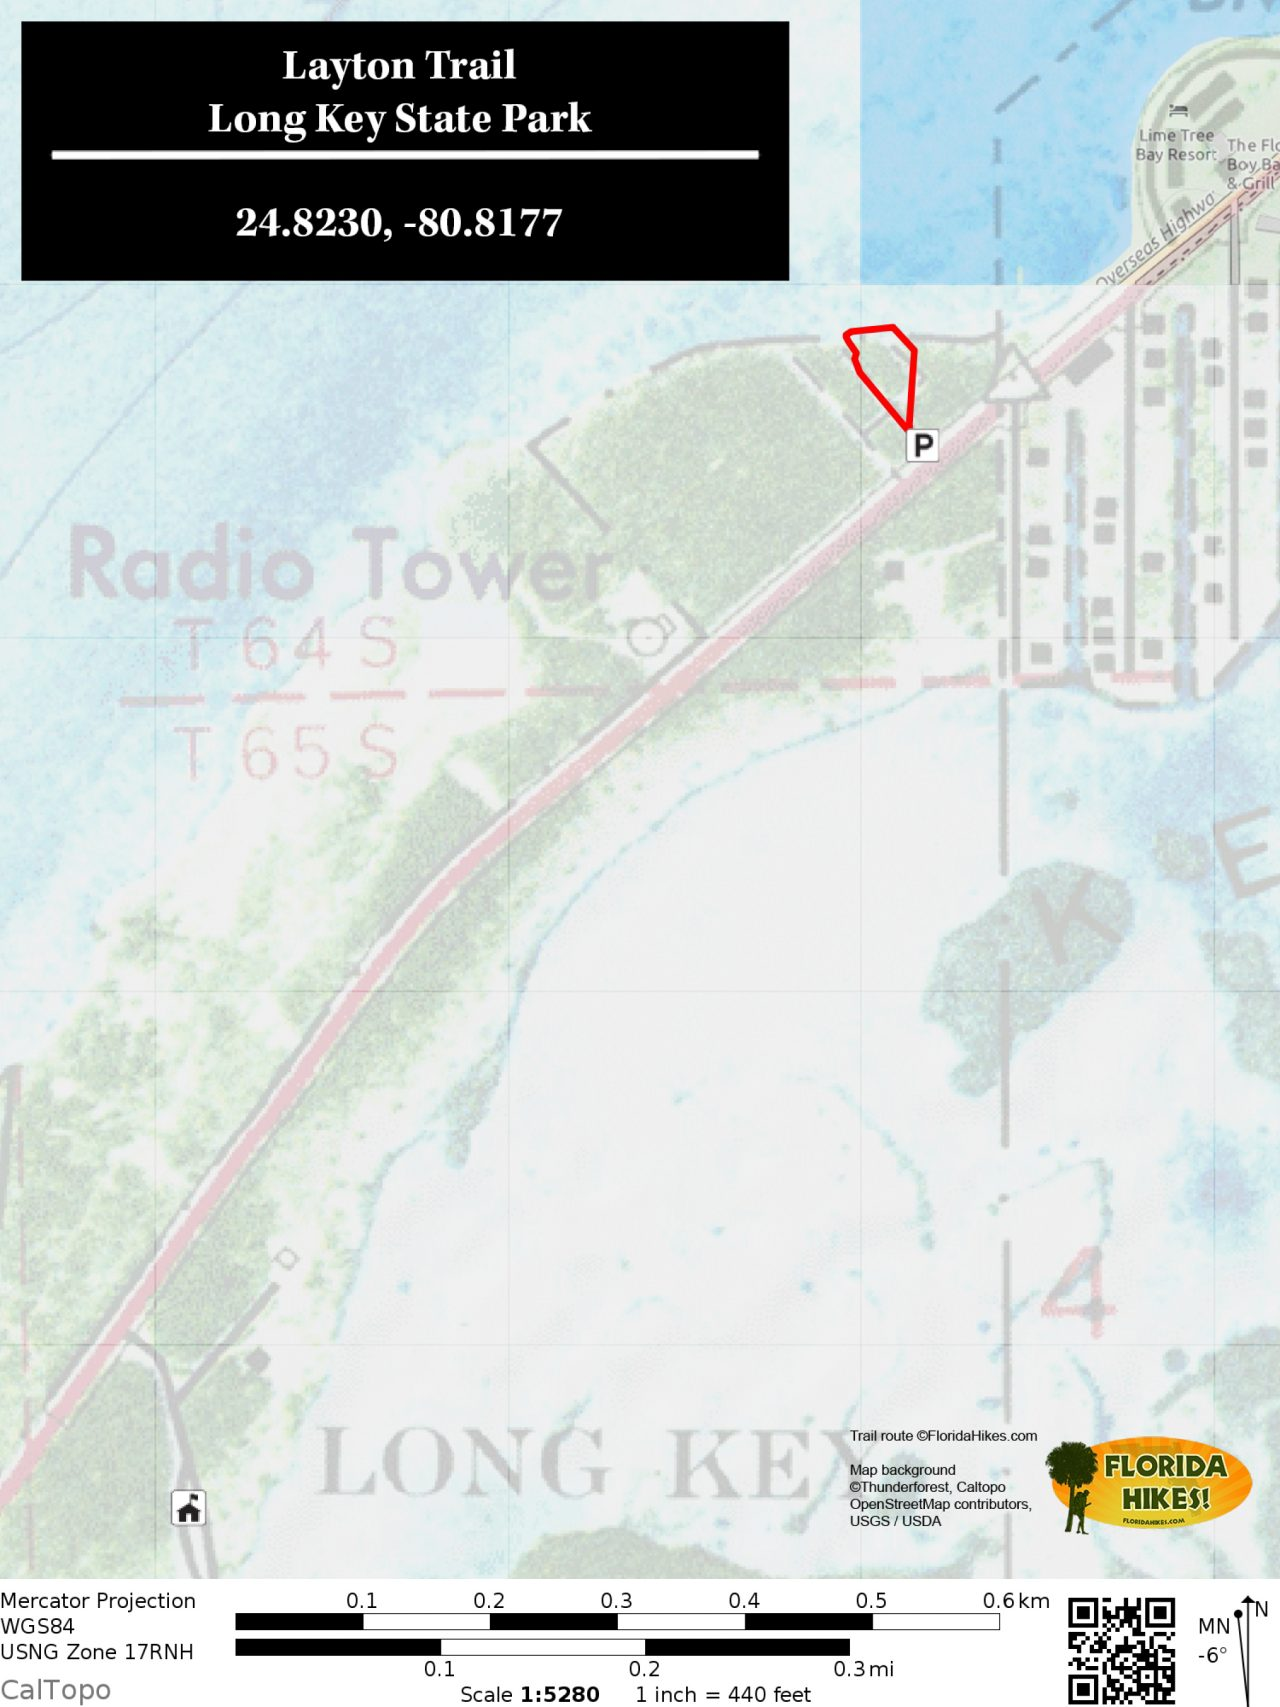 Layton Trail map, Long Key